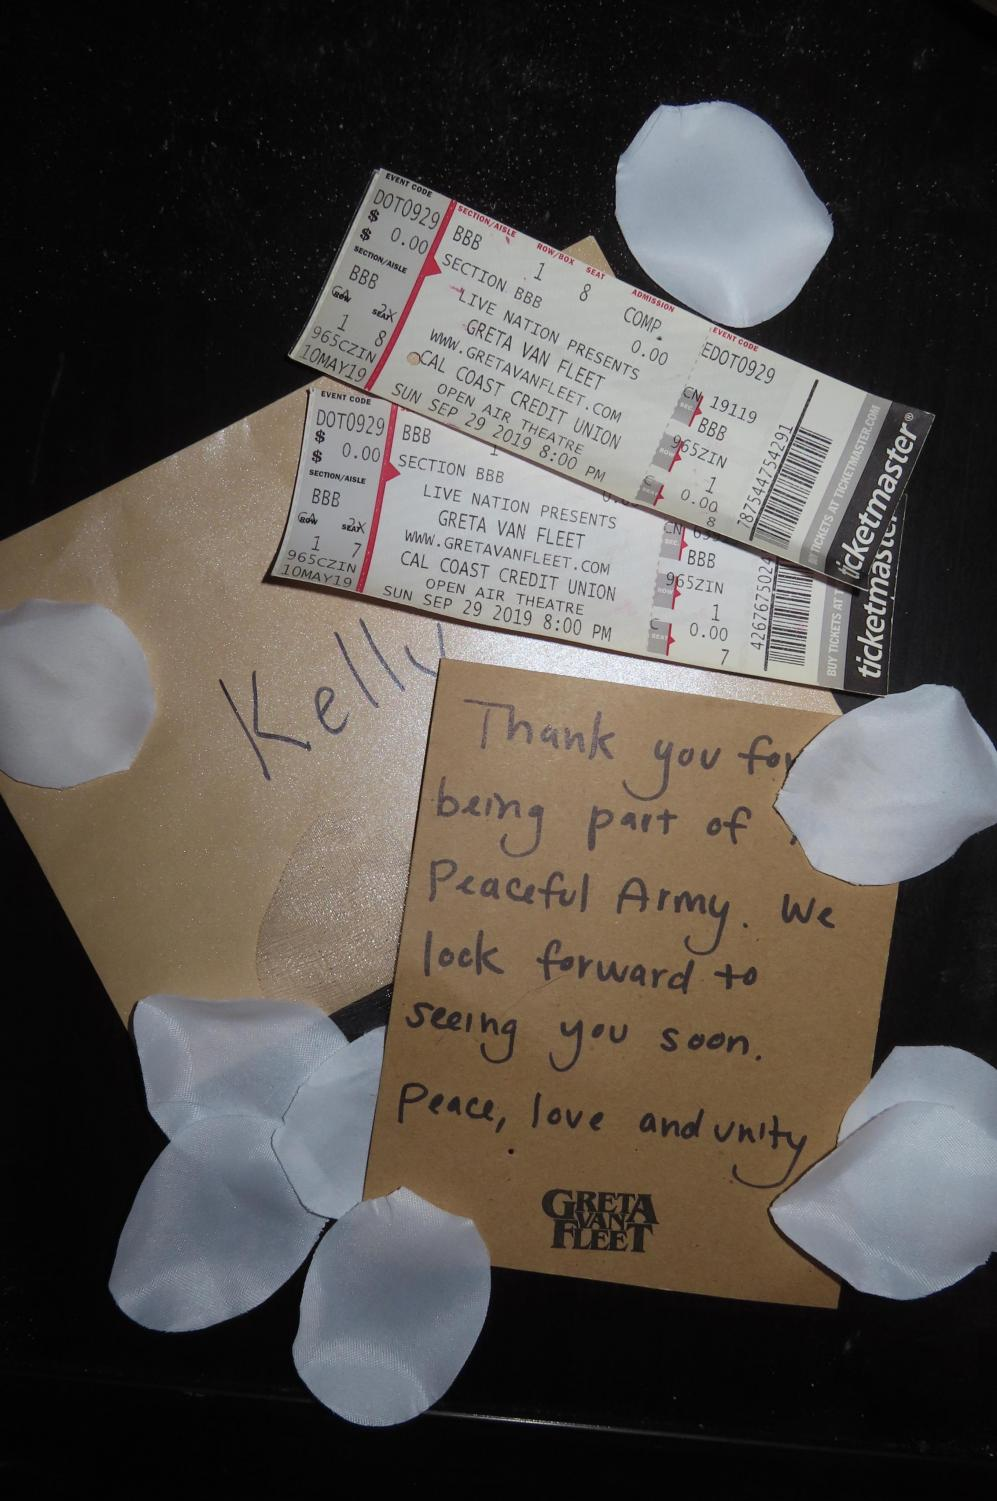 Kelly Shea Kerrigan received a personal note and free front row seats to see one of her favorite bands, Greta Van Fleet.